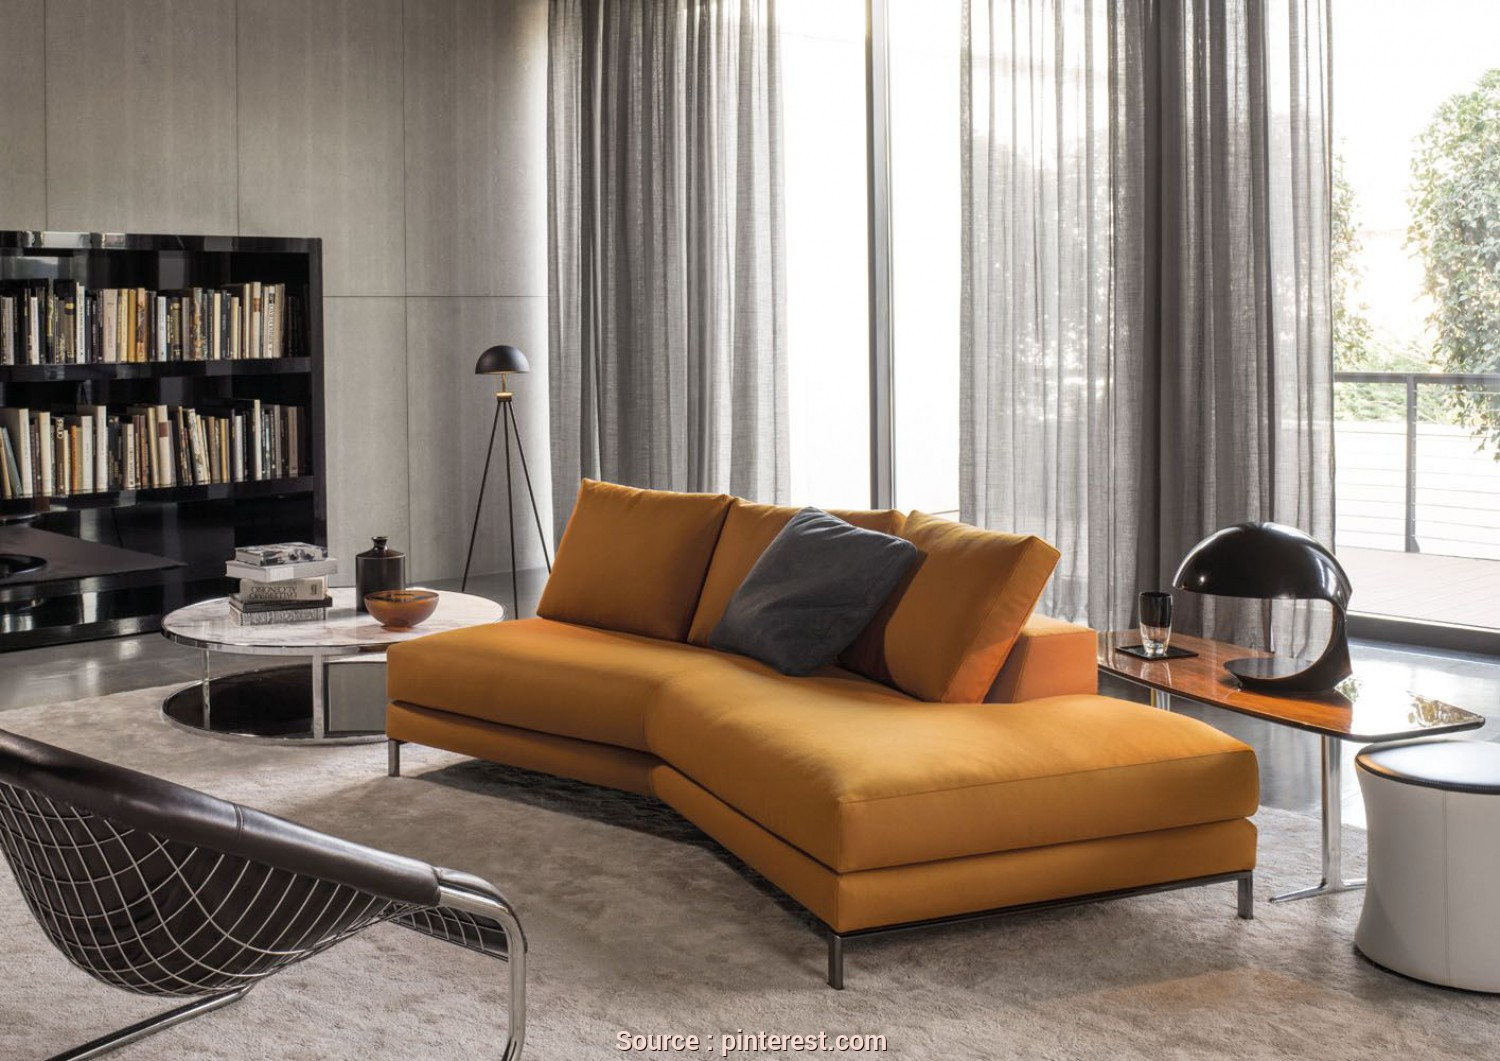 Divano Hamilton Island Minotti, Originale Smink Incorporated, Products, Sofas, Minotti, Hamilton Islands